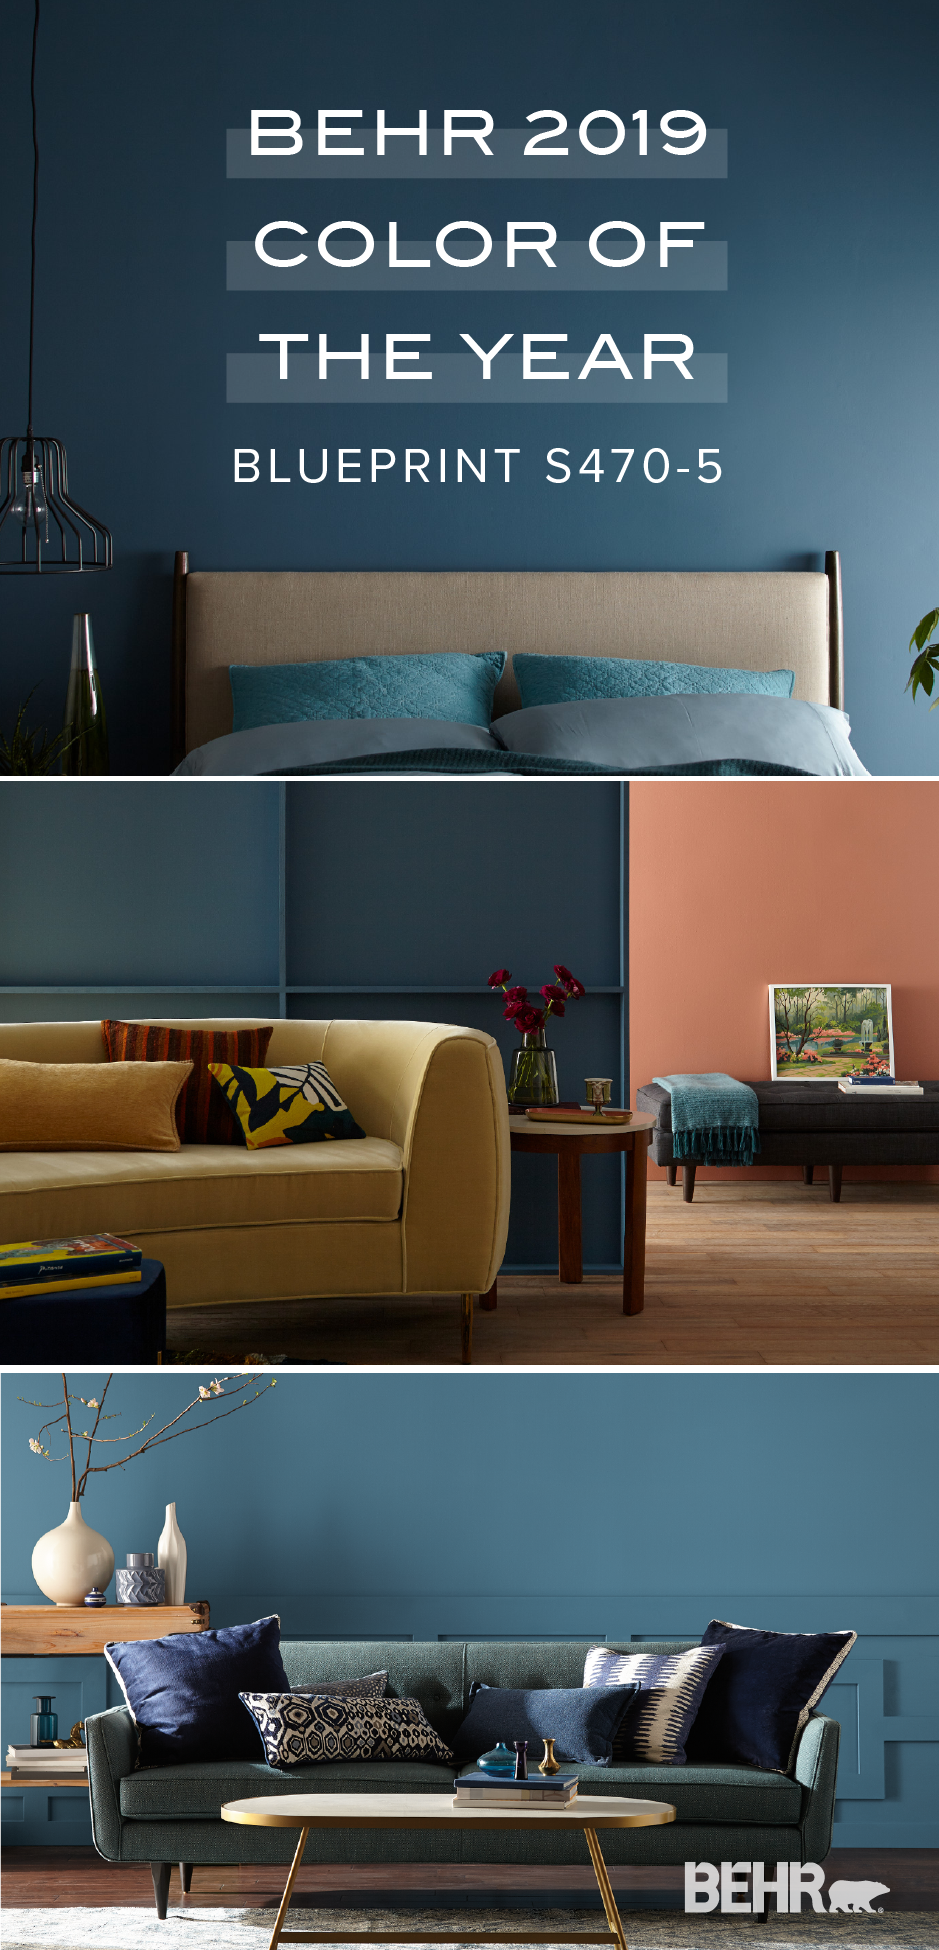 Pin On Behr 2019 Color Trends